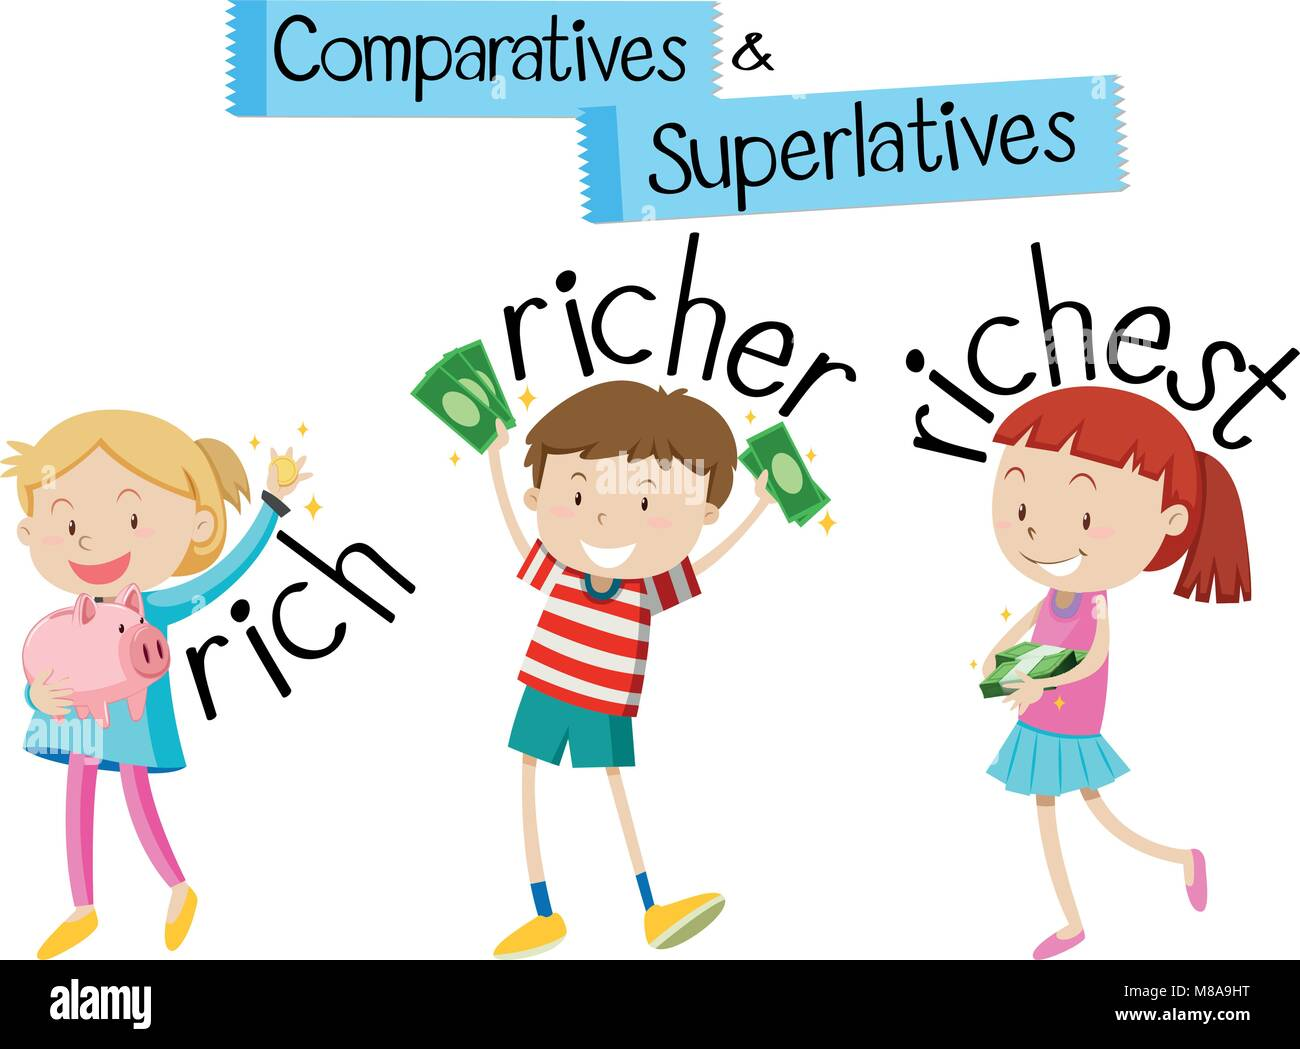 English Grammar For Comparatives And Superlatives With